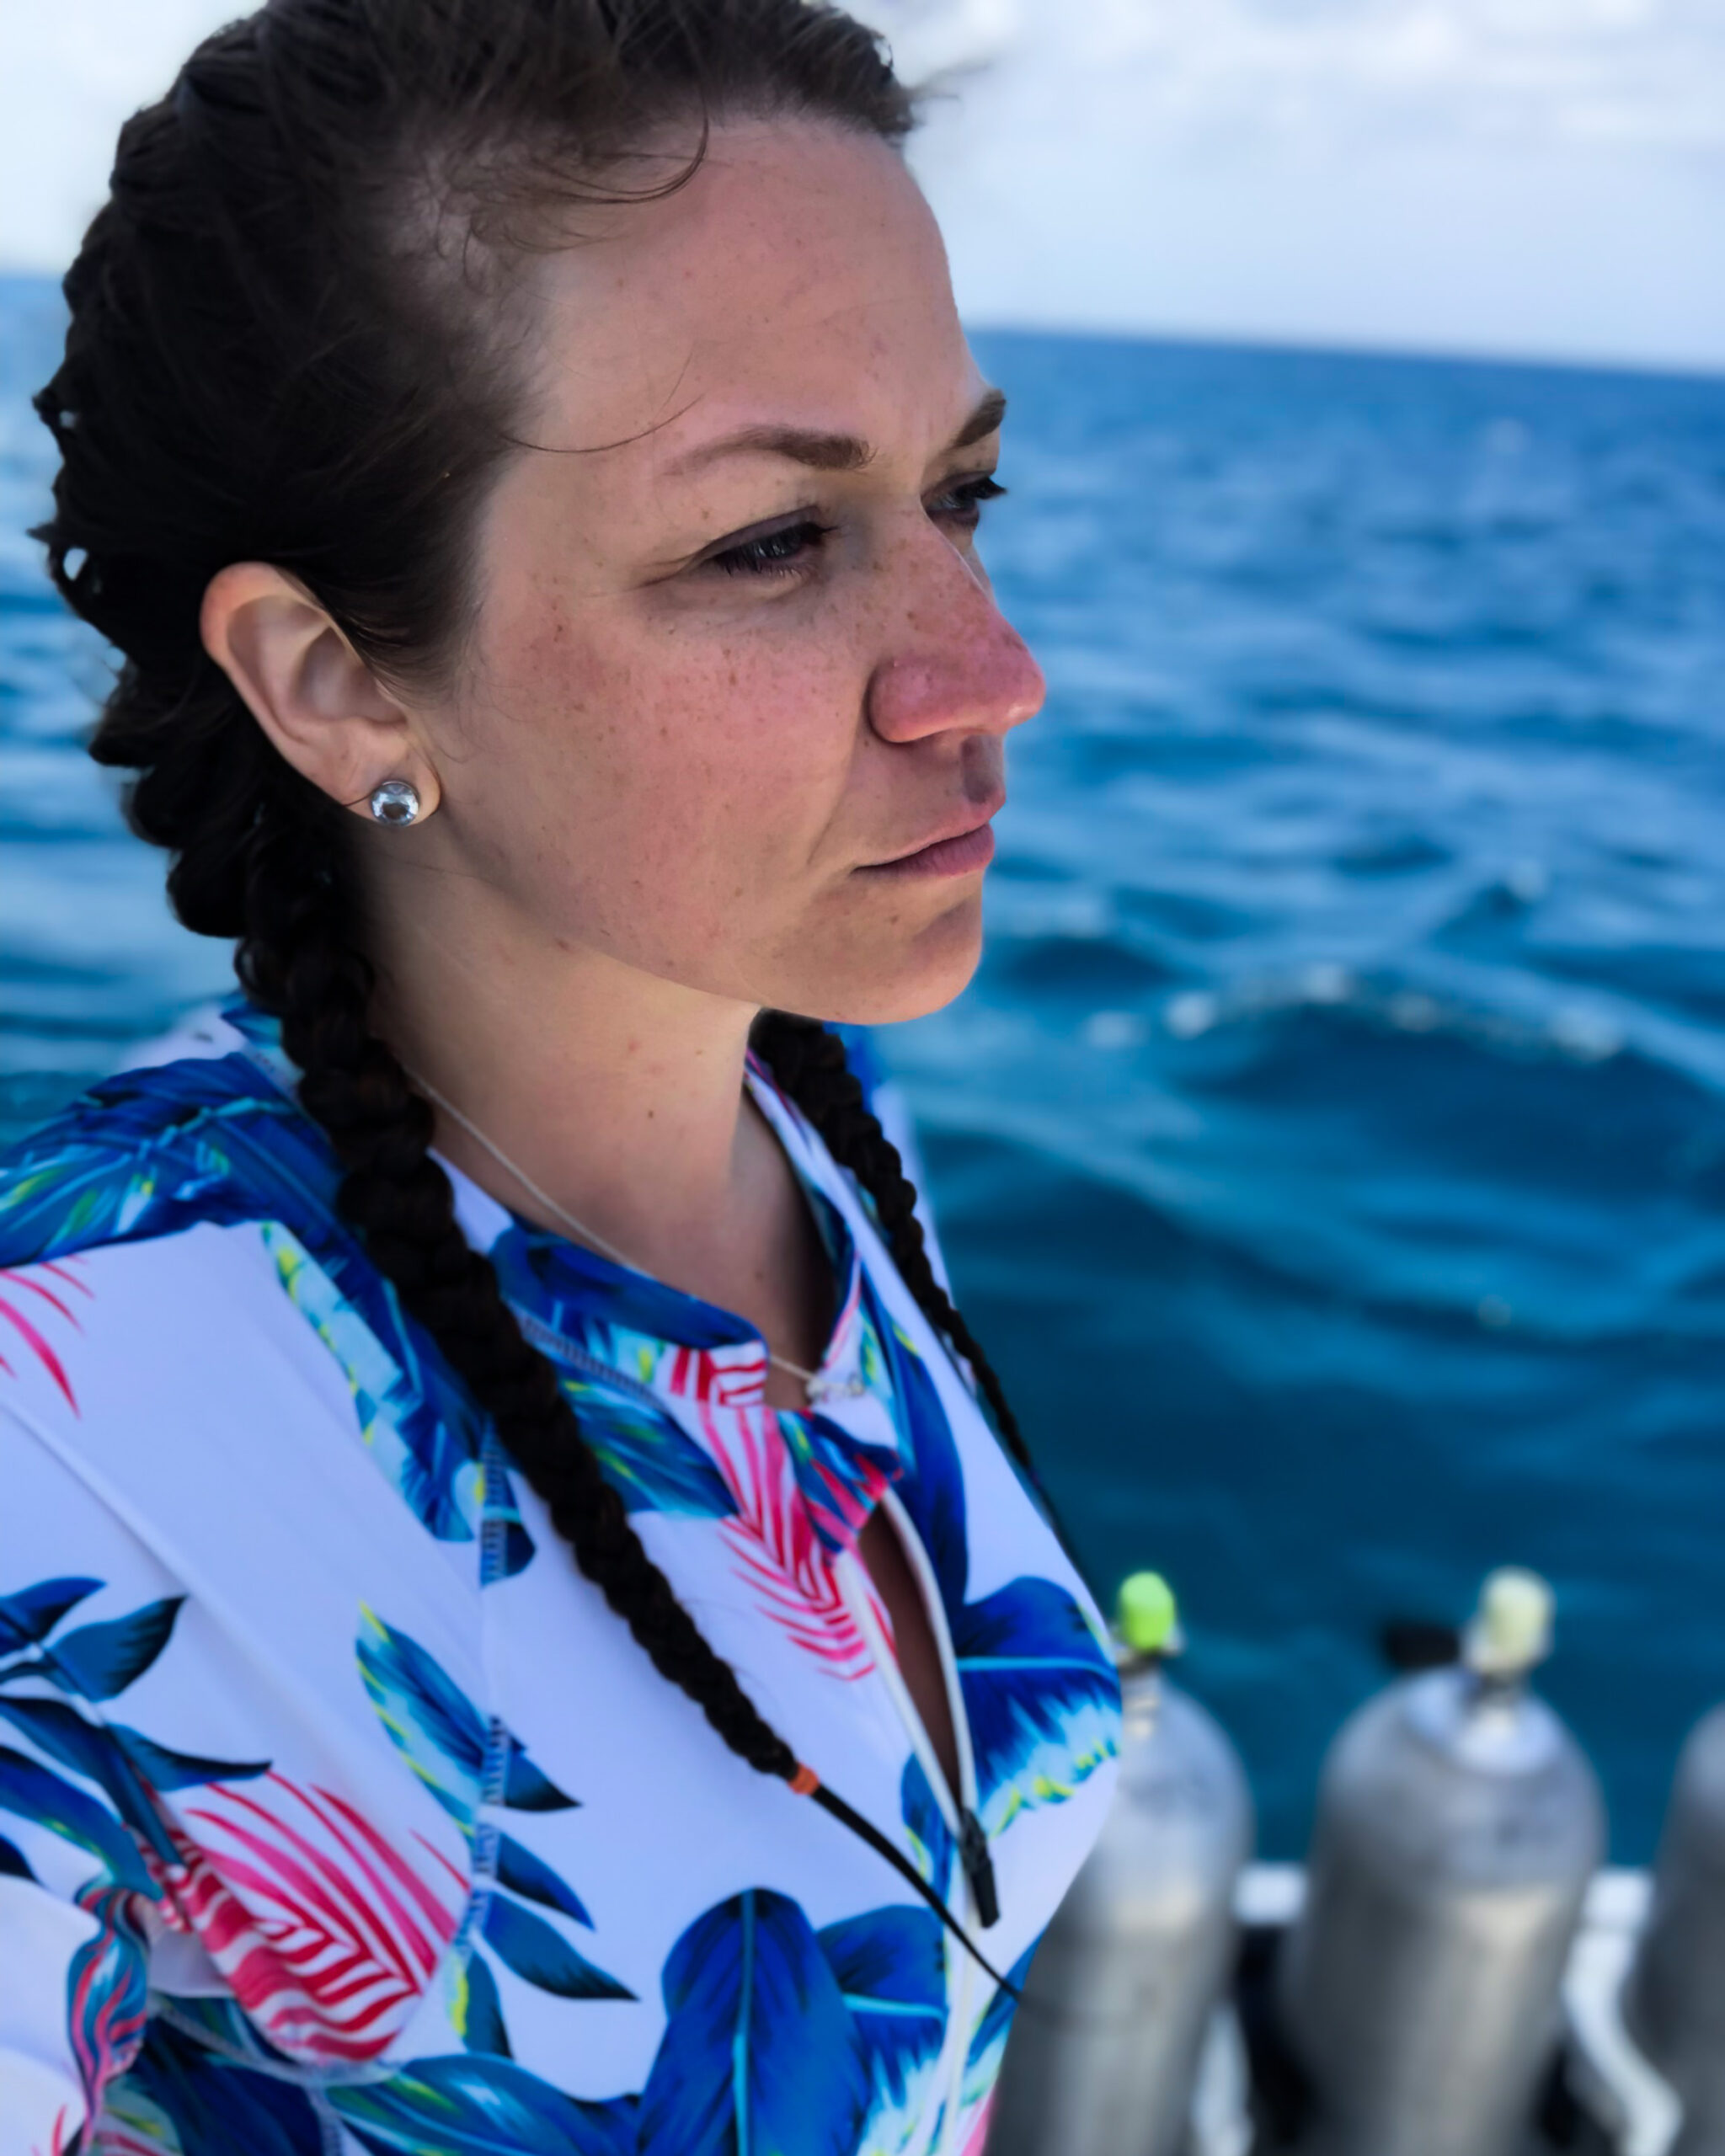 girl in Aruba before scuba diving she has braided hair to avoid a tangled mess